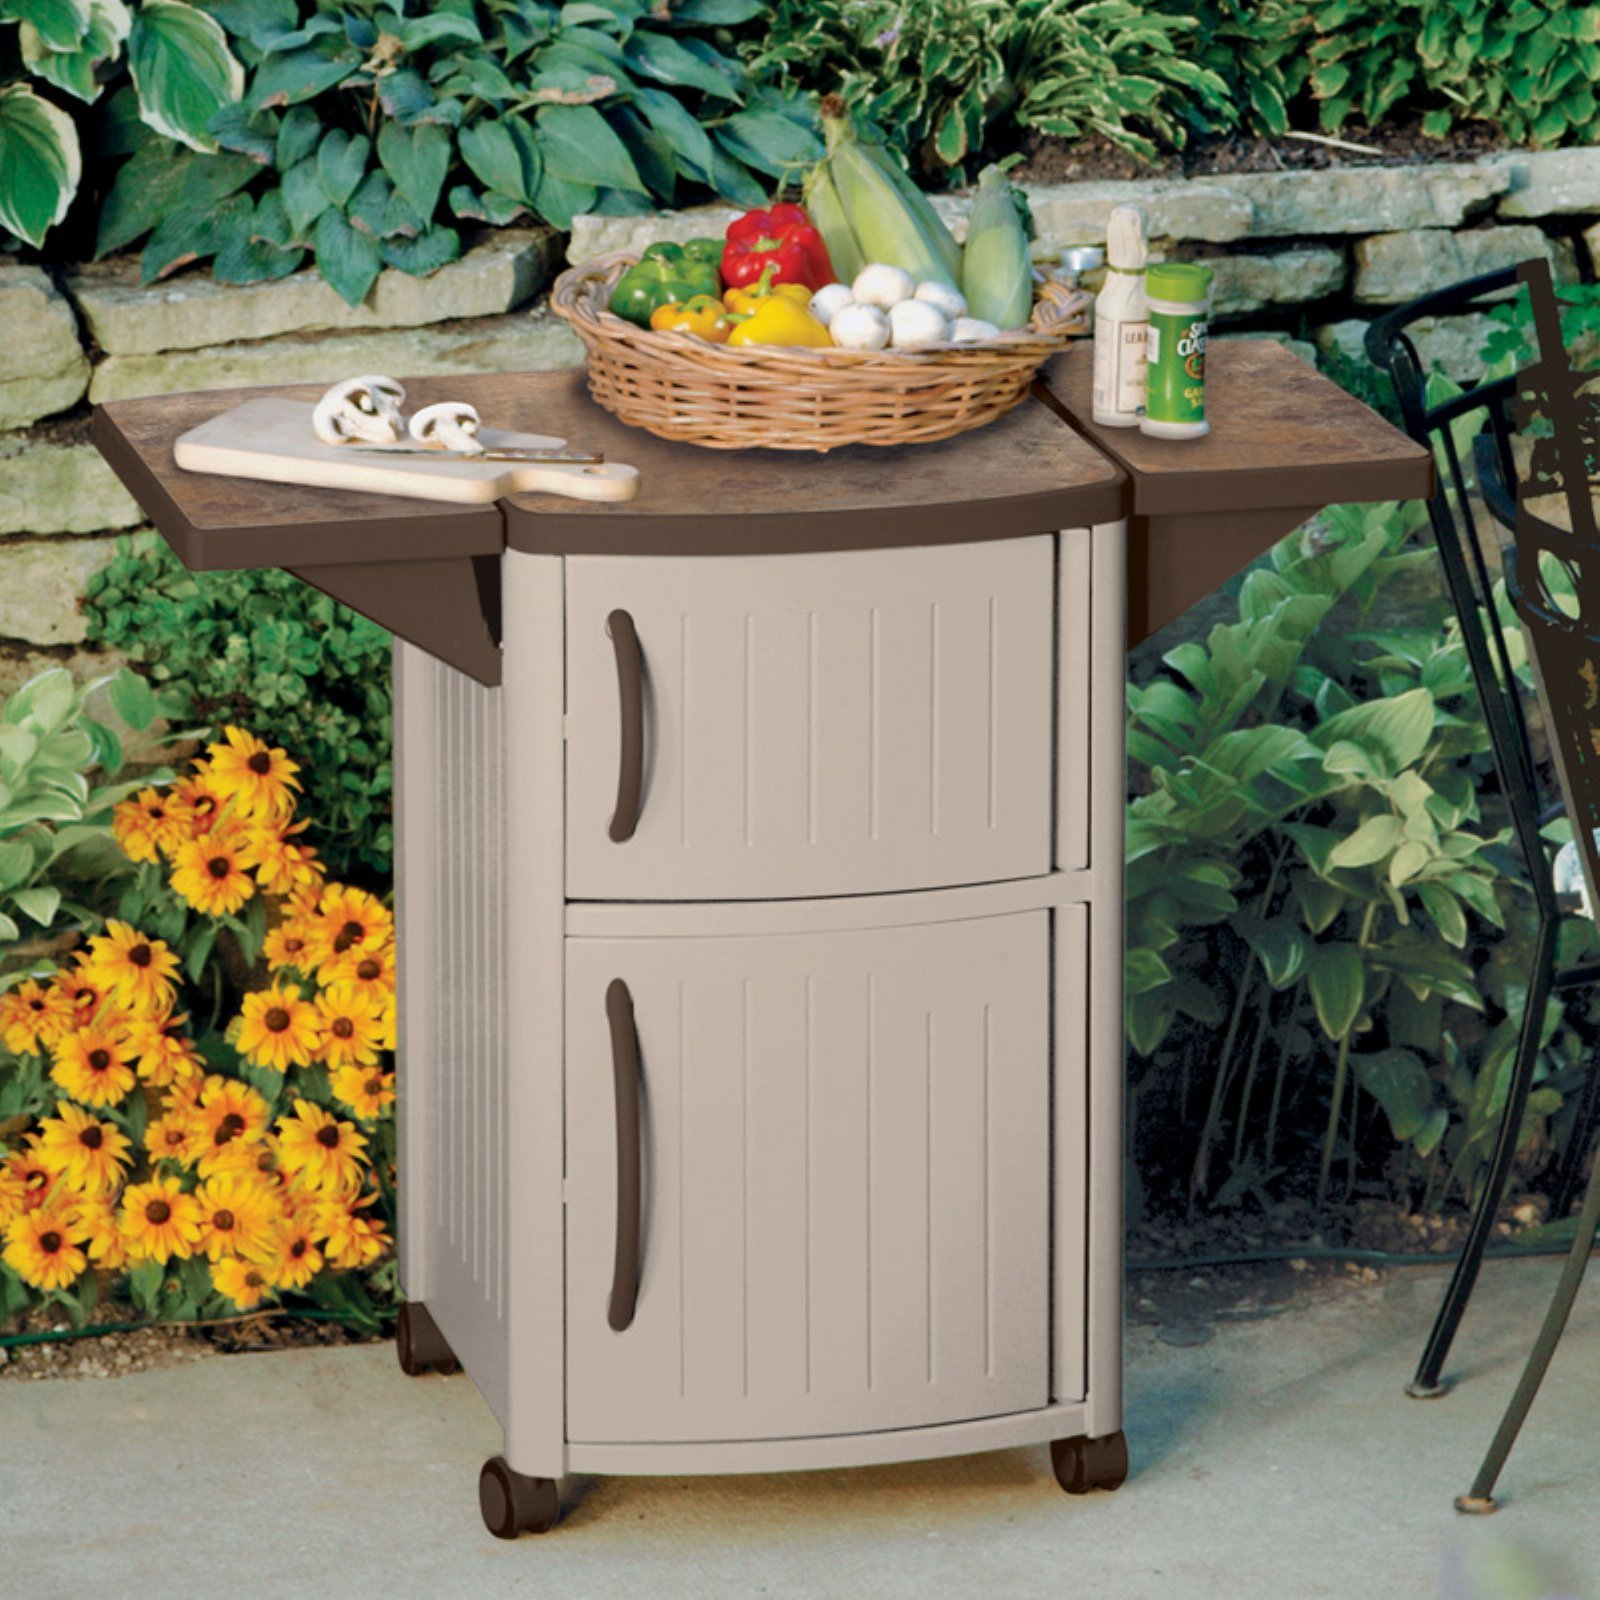 Outdoor Prep Table Station BBQ Patio Storage Cabinet Cooking Food Serving Island Cart Portable Deck Backyard by Patio Joy